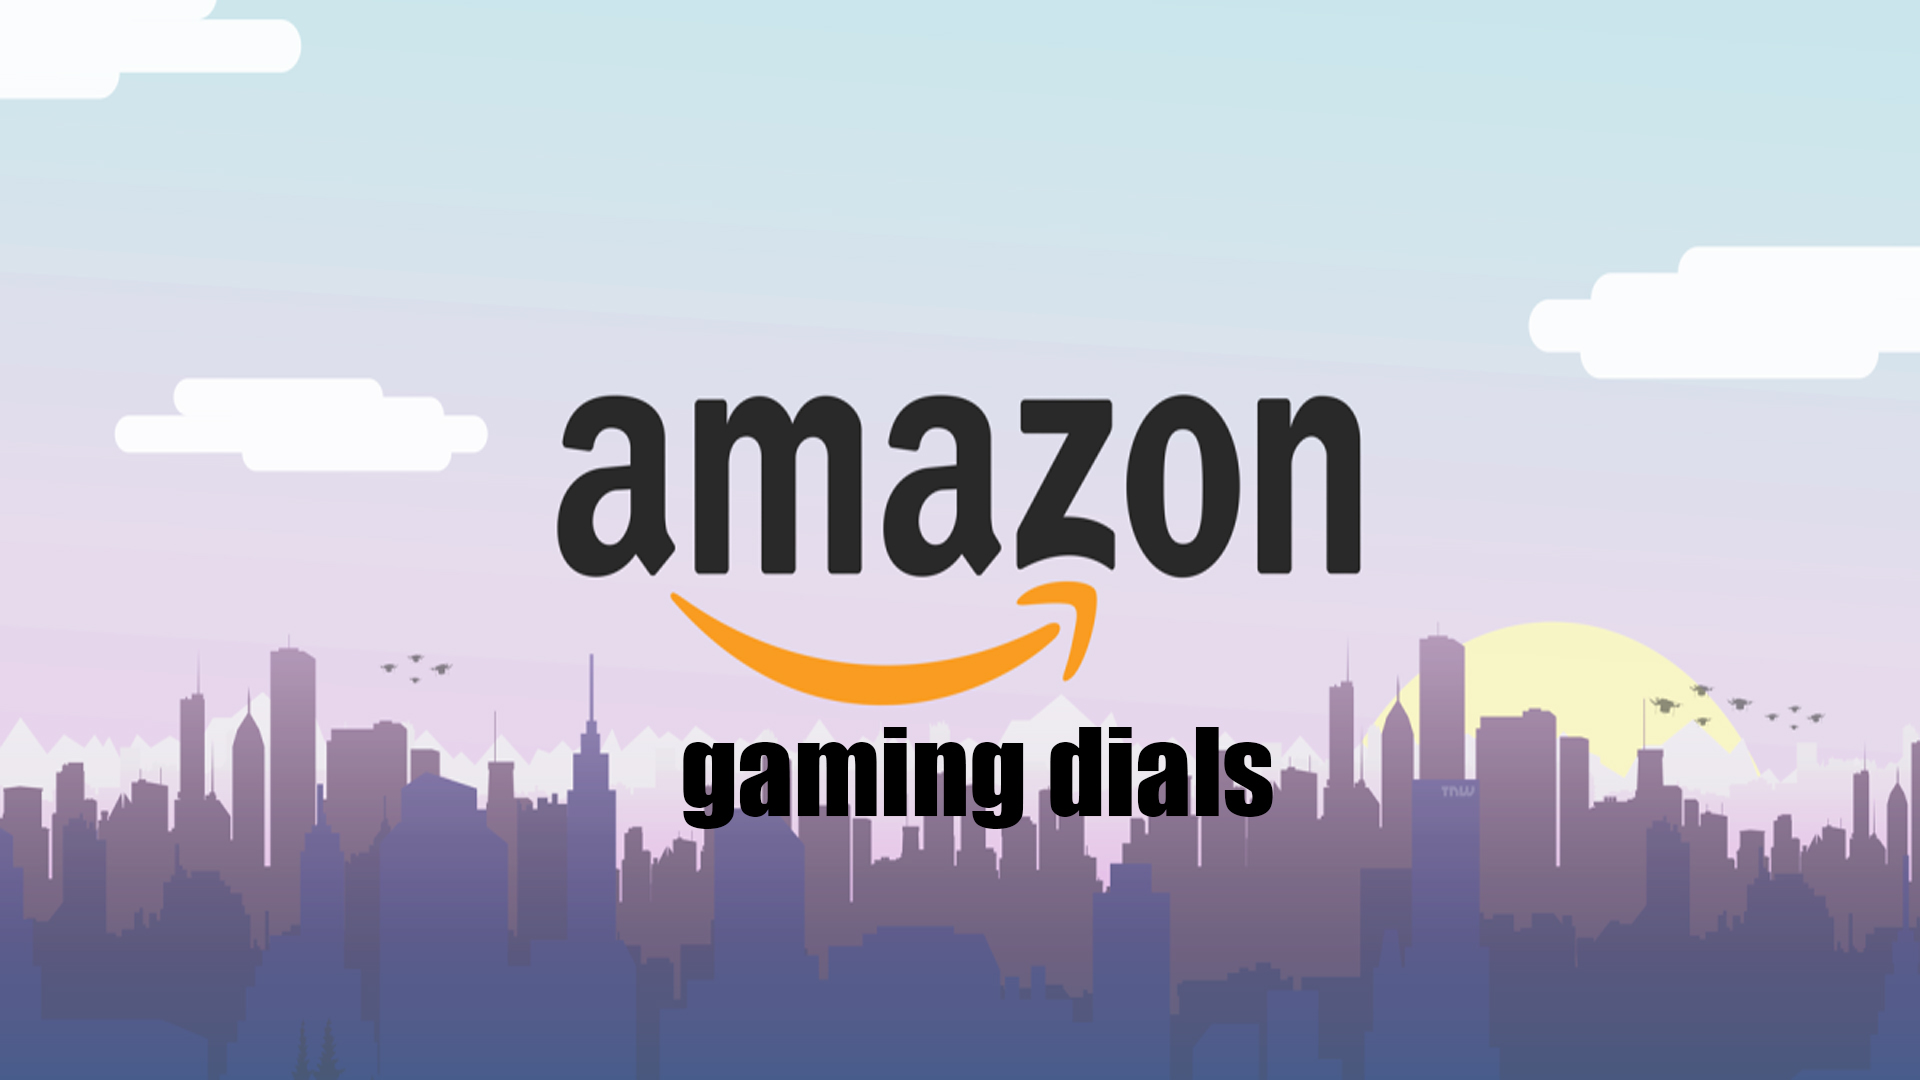 Offerte giornaliere del Amazon gaming wek